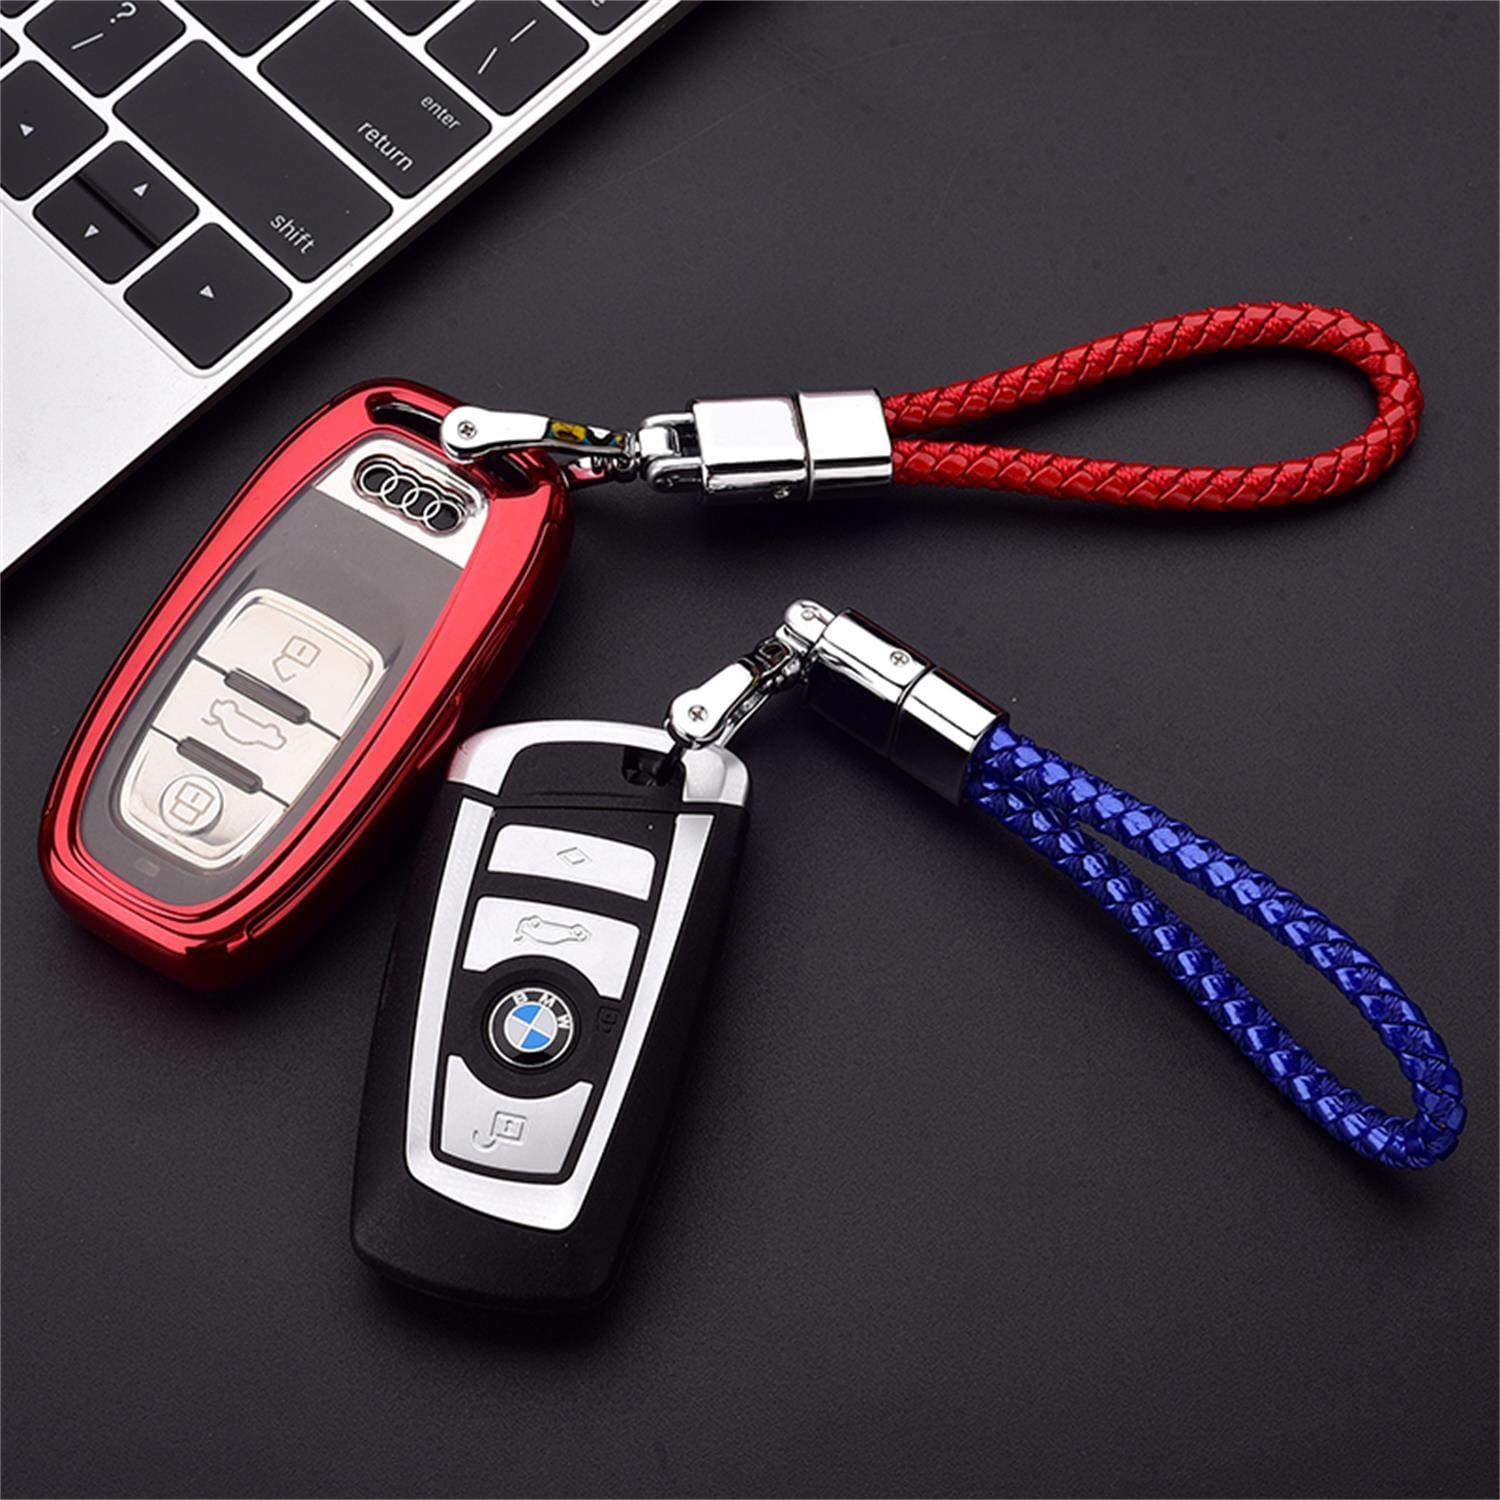 Key Chain-Red Fashionable Car Key Chain,Accessories Fit BMW Honda Audi Lexus Ford VW Mercedes Benz Nissan Cadillac Maserati Volvo Toyota,Key Chain Key Ring Metal Alloy BV Style Leather Gift